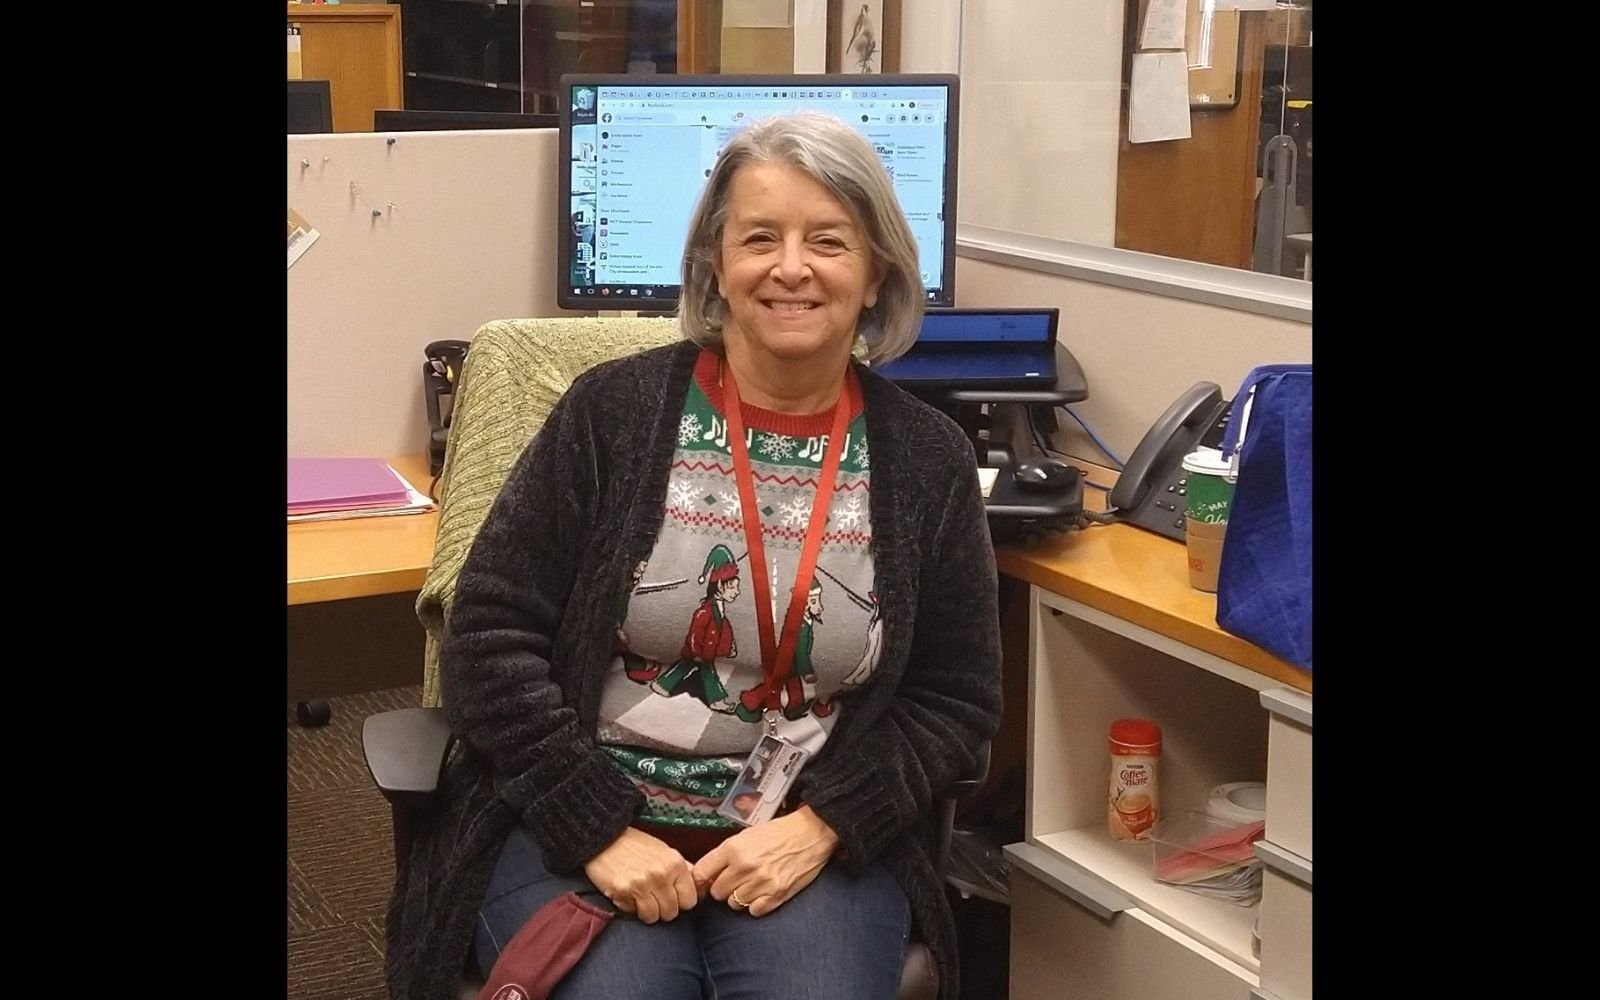 Woman with short grey hair wearing a long black cardigan and red lanyard sits at a desk with a computer behind her and smiles at the camera.